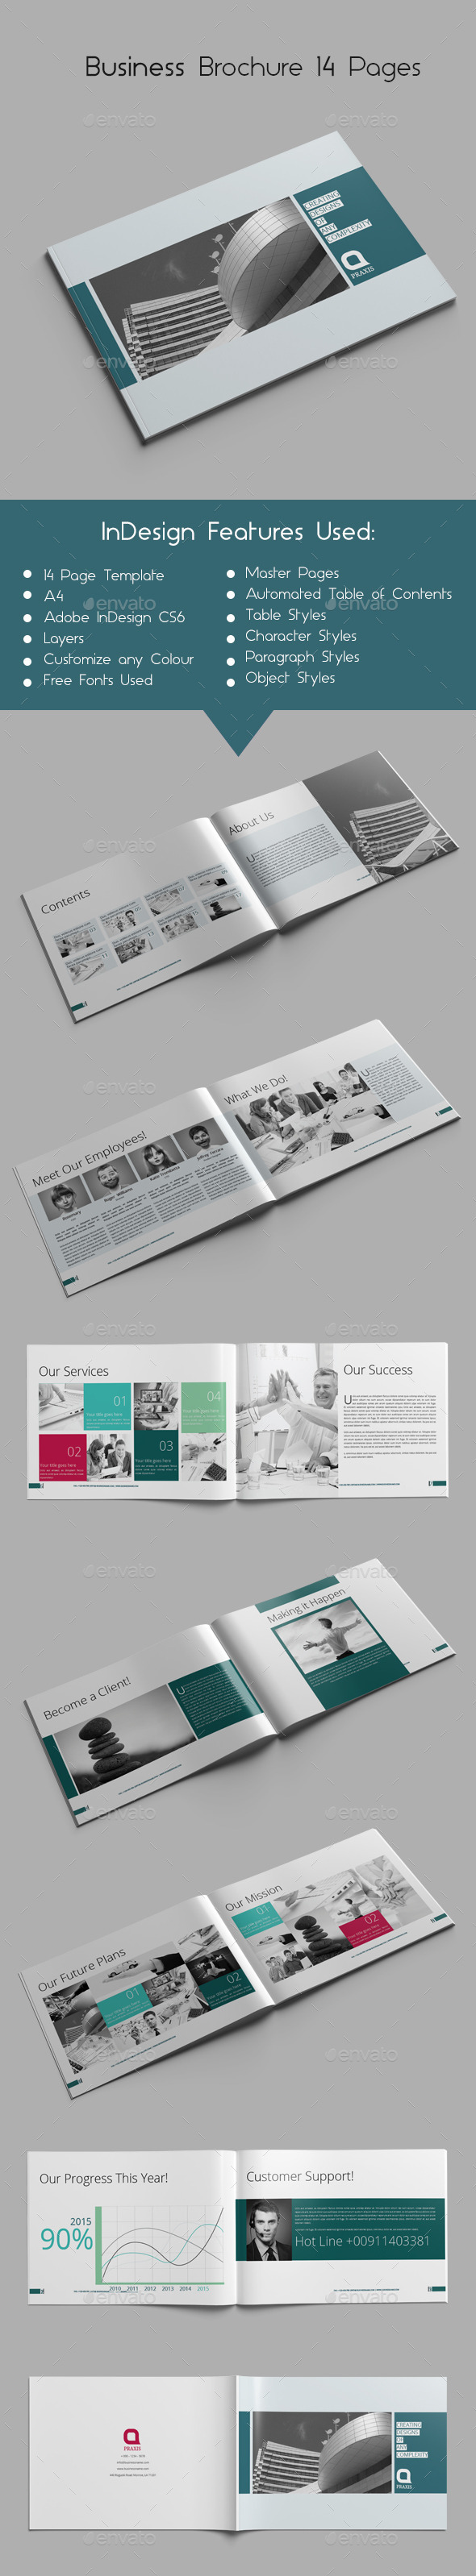 Business Brochure 14 Pages - Brochures Print Templates